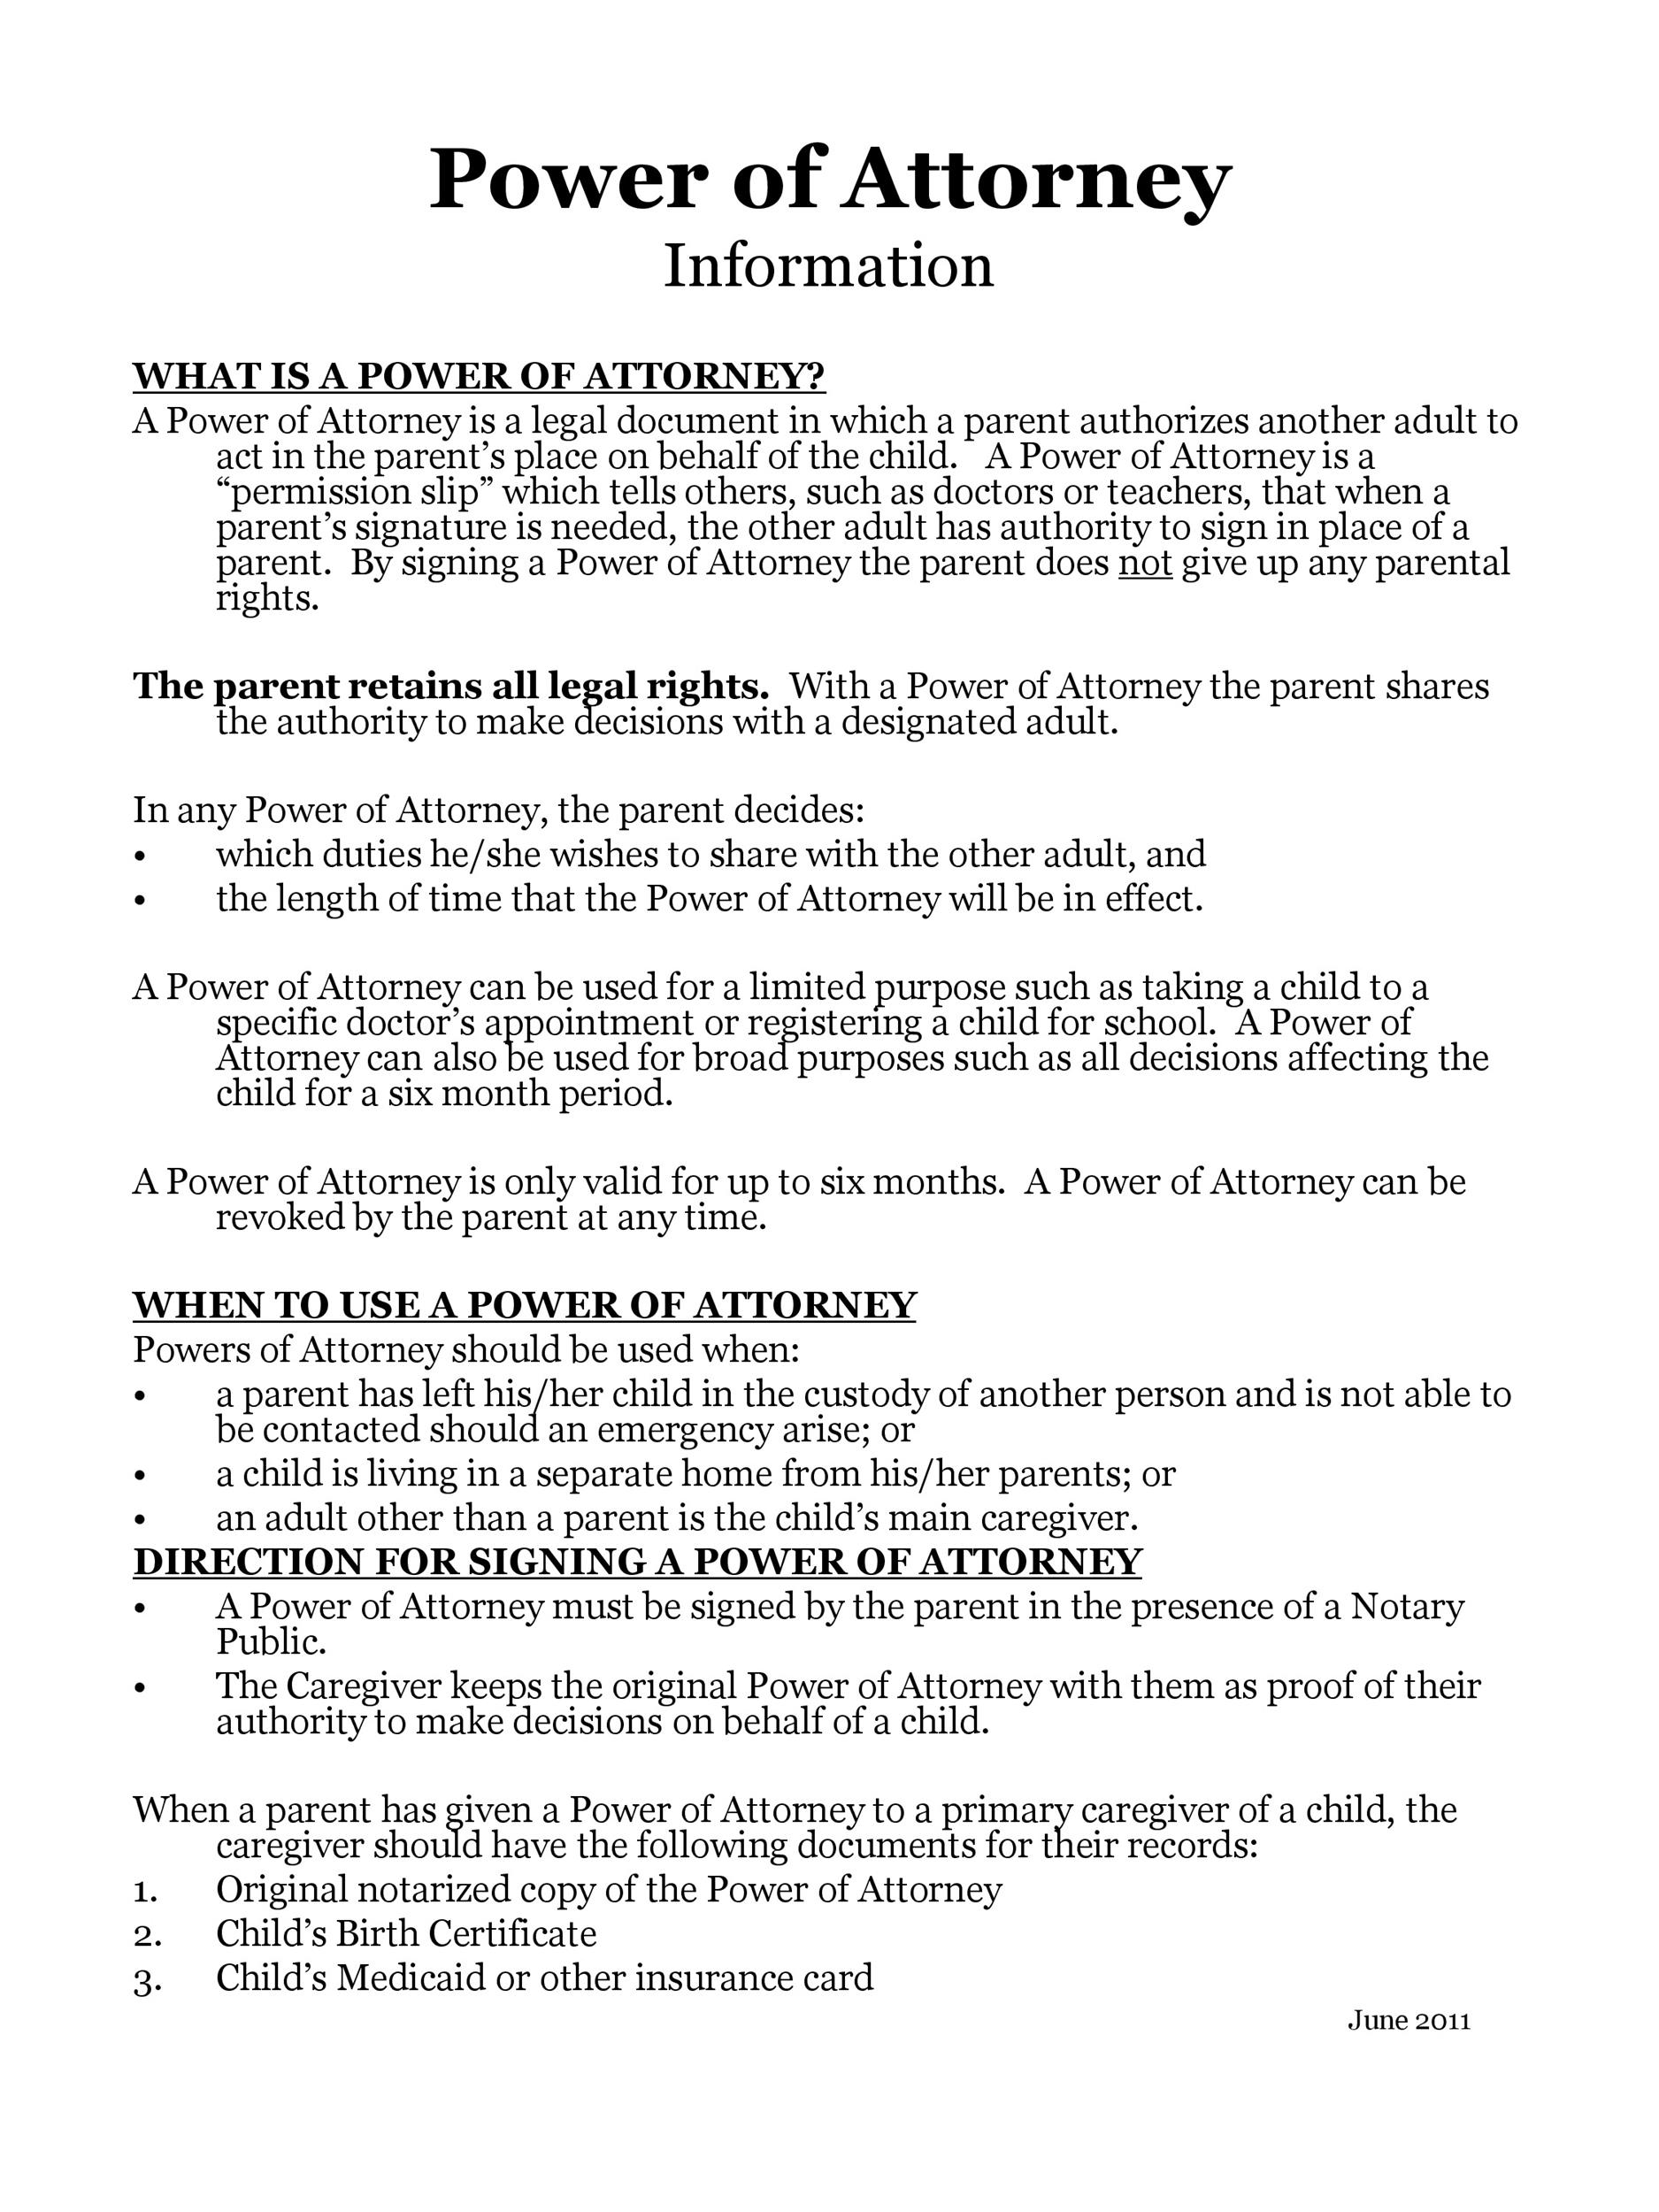 Free power of attorney 50